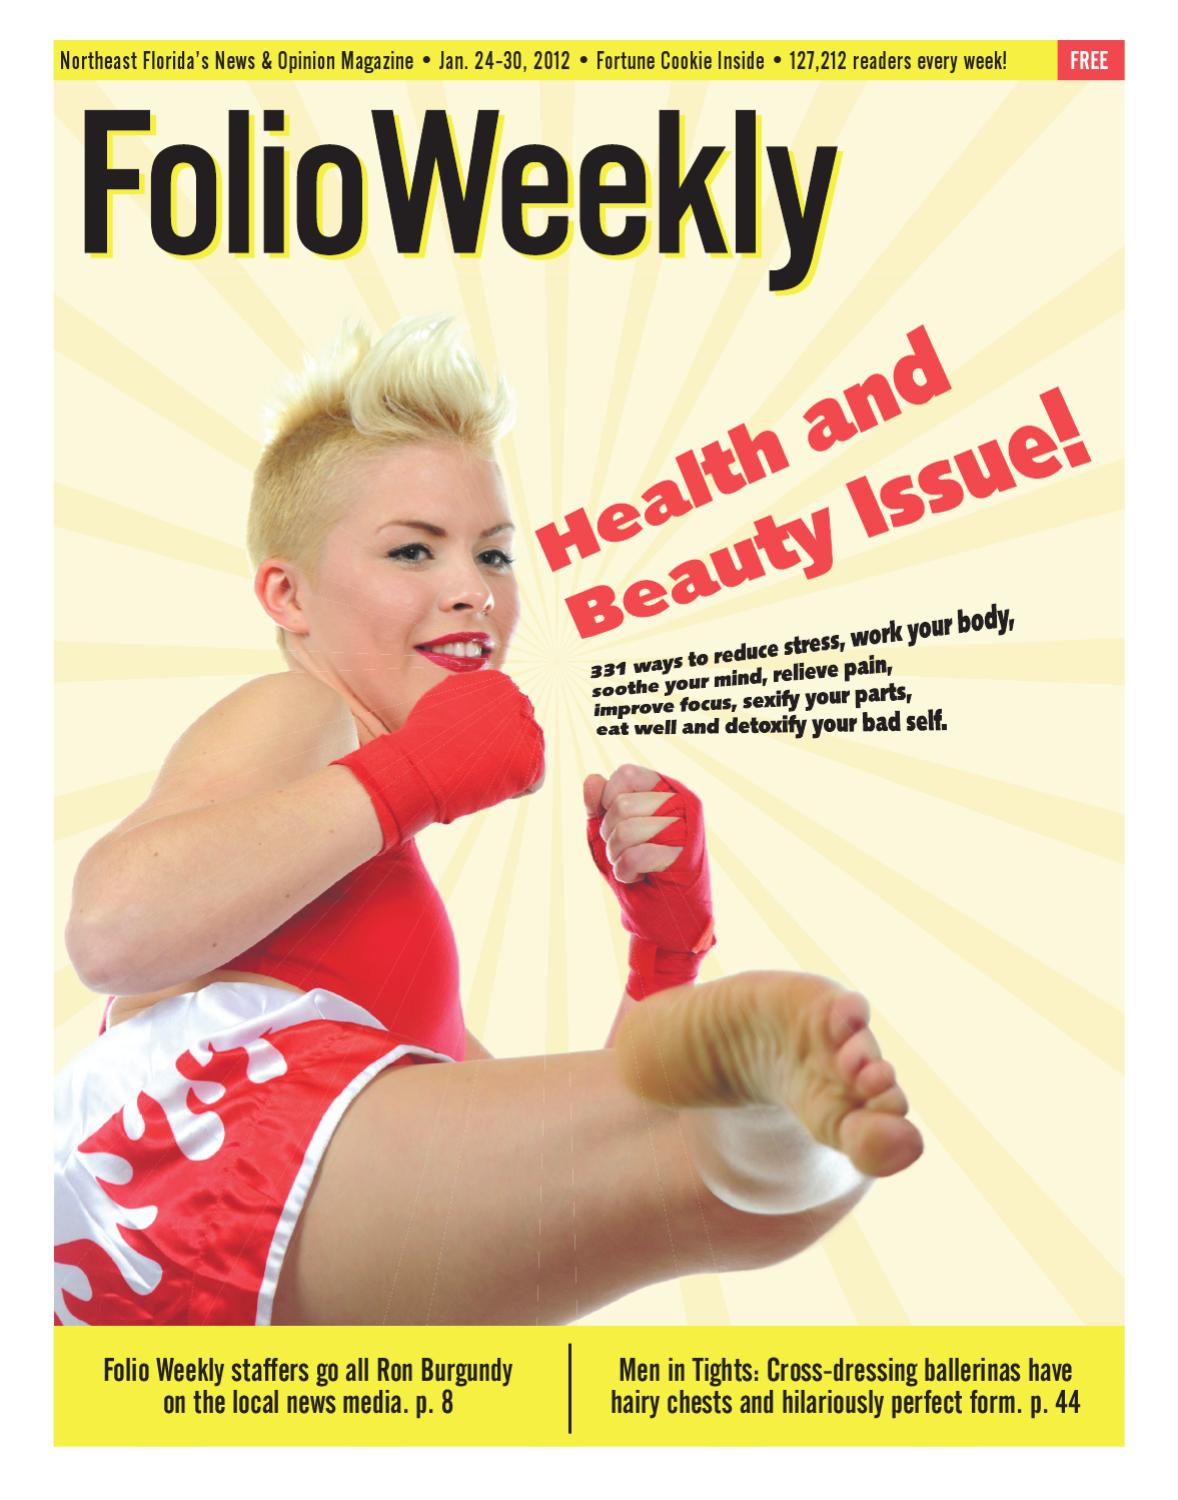 5f4650183870 012412 by Folio Weekly - issuu